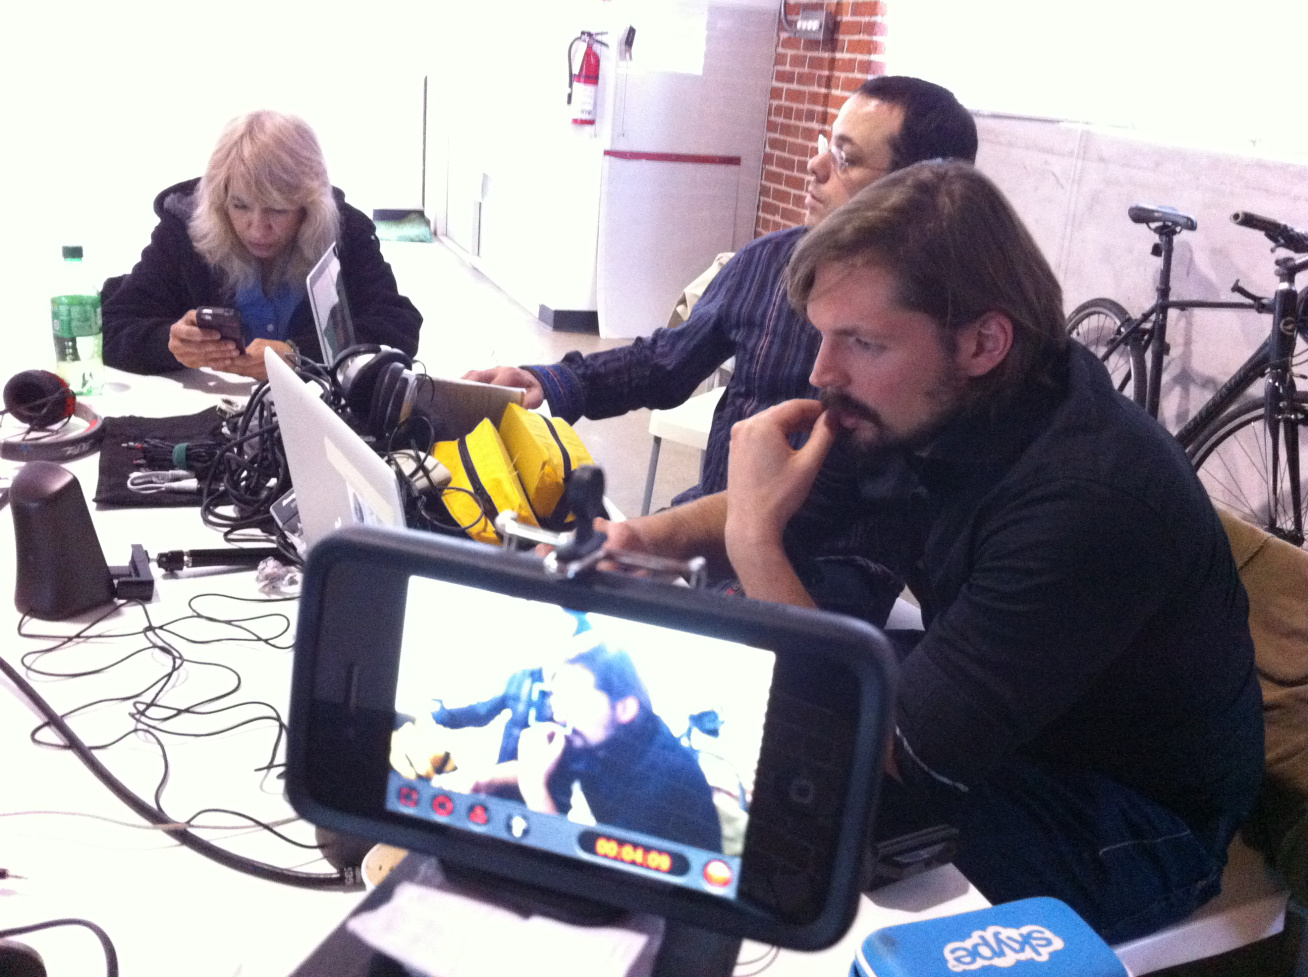 Launch of the Mobile Film School